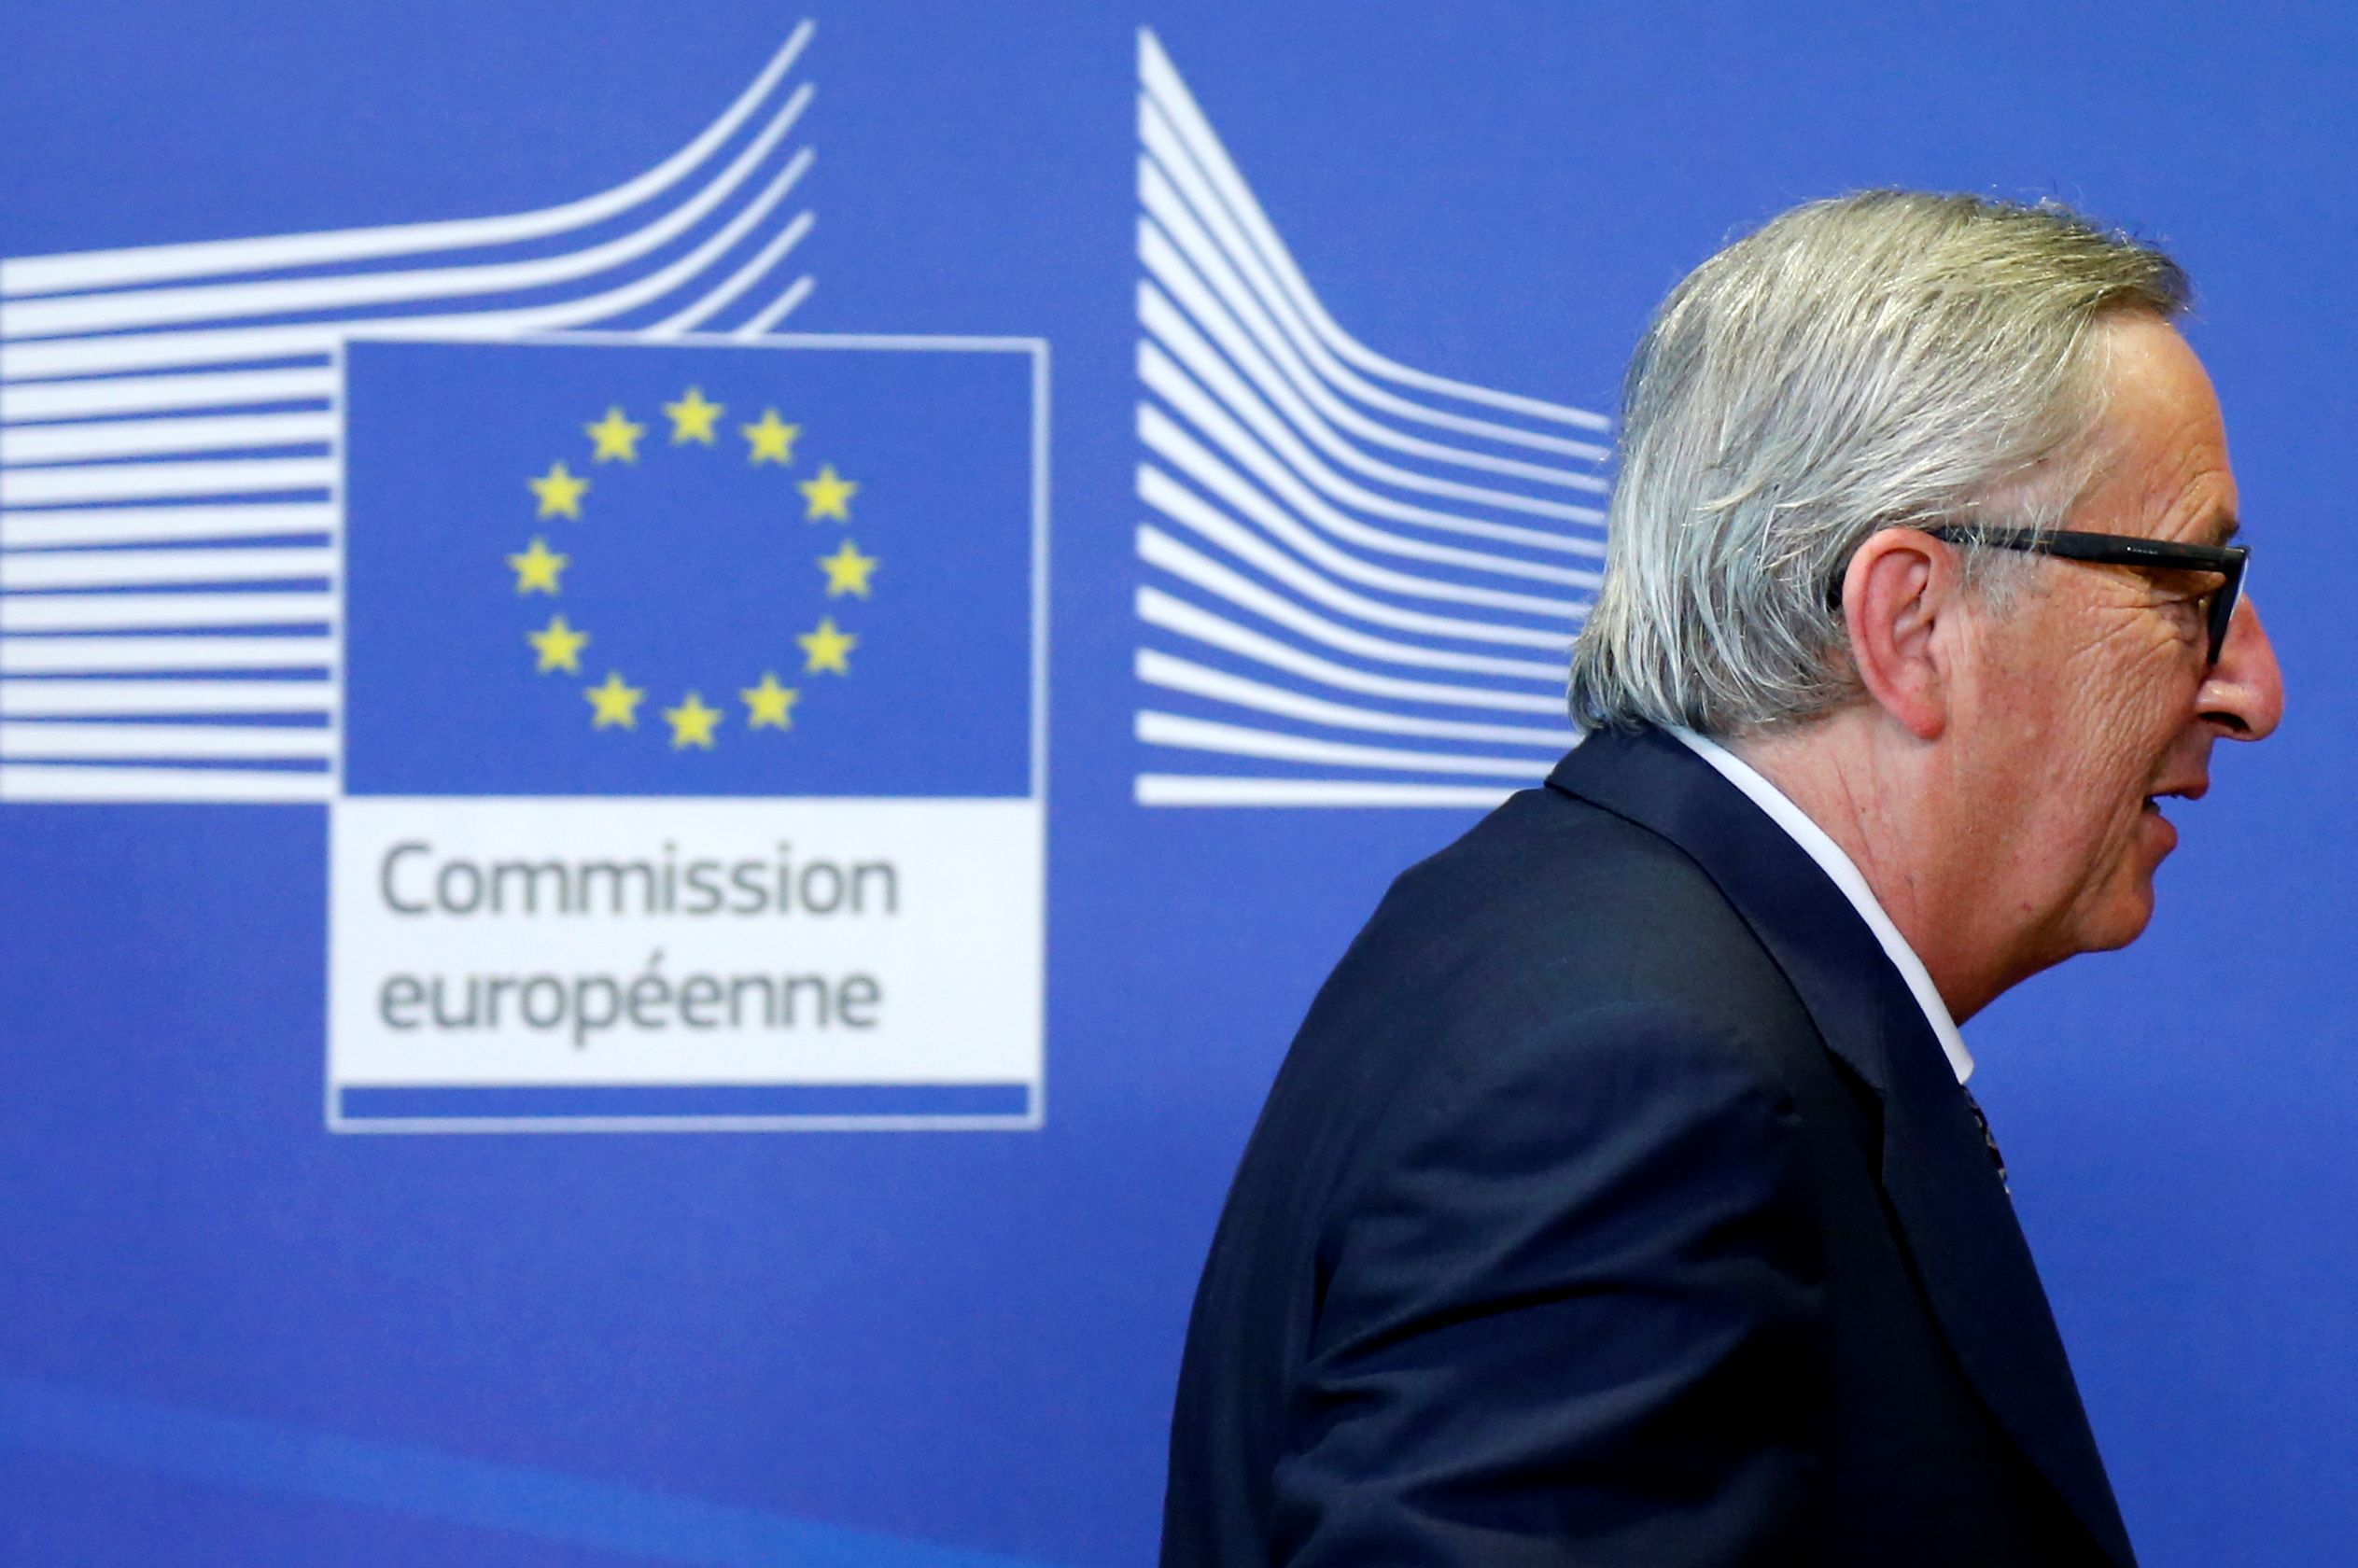 EU Commission�s Juncker Faces Calls to Resign After Brexit Vote